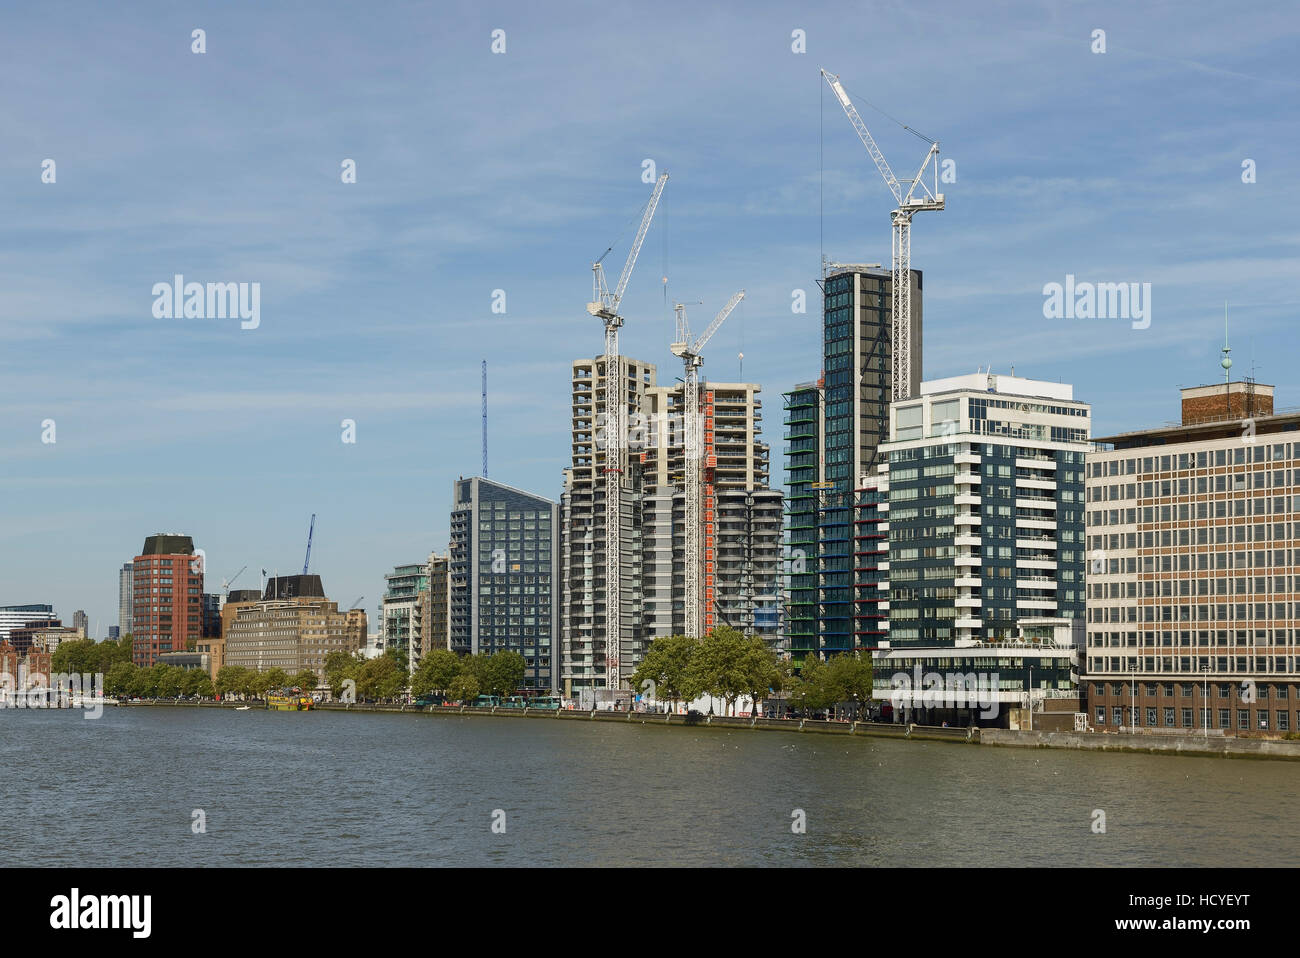 New apartments and tower blocks under construction alongside the RIver Thames in Lambeth London UK - Stock Image